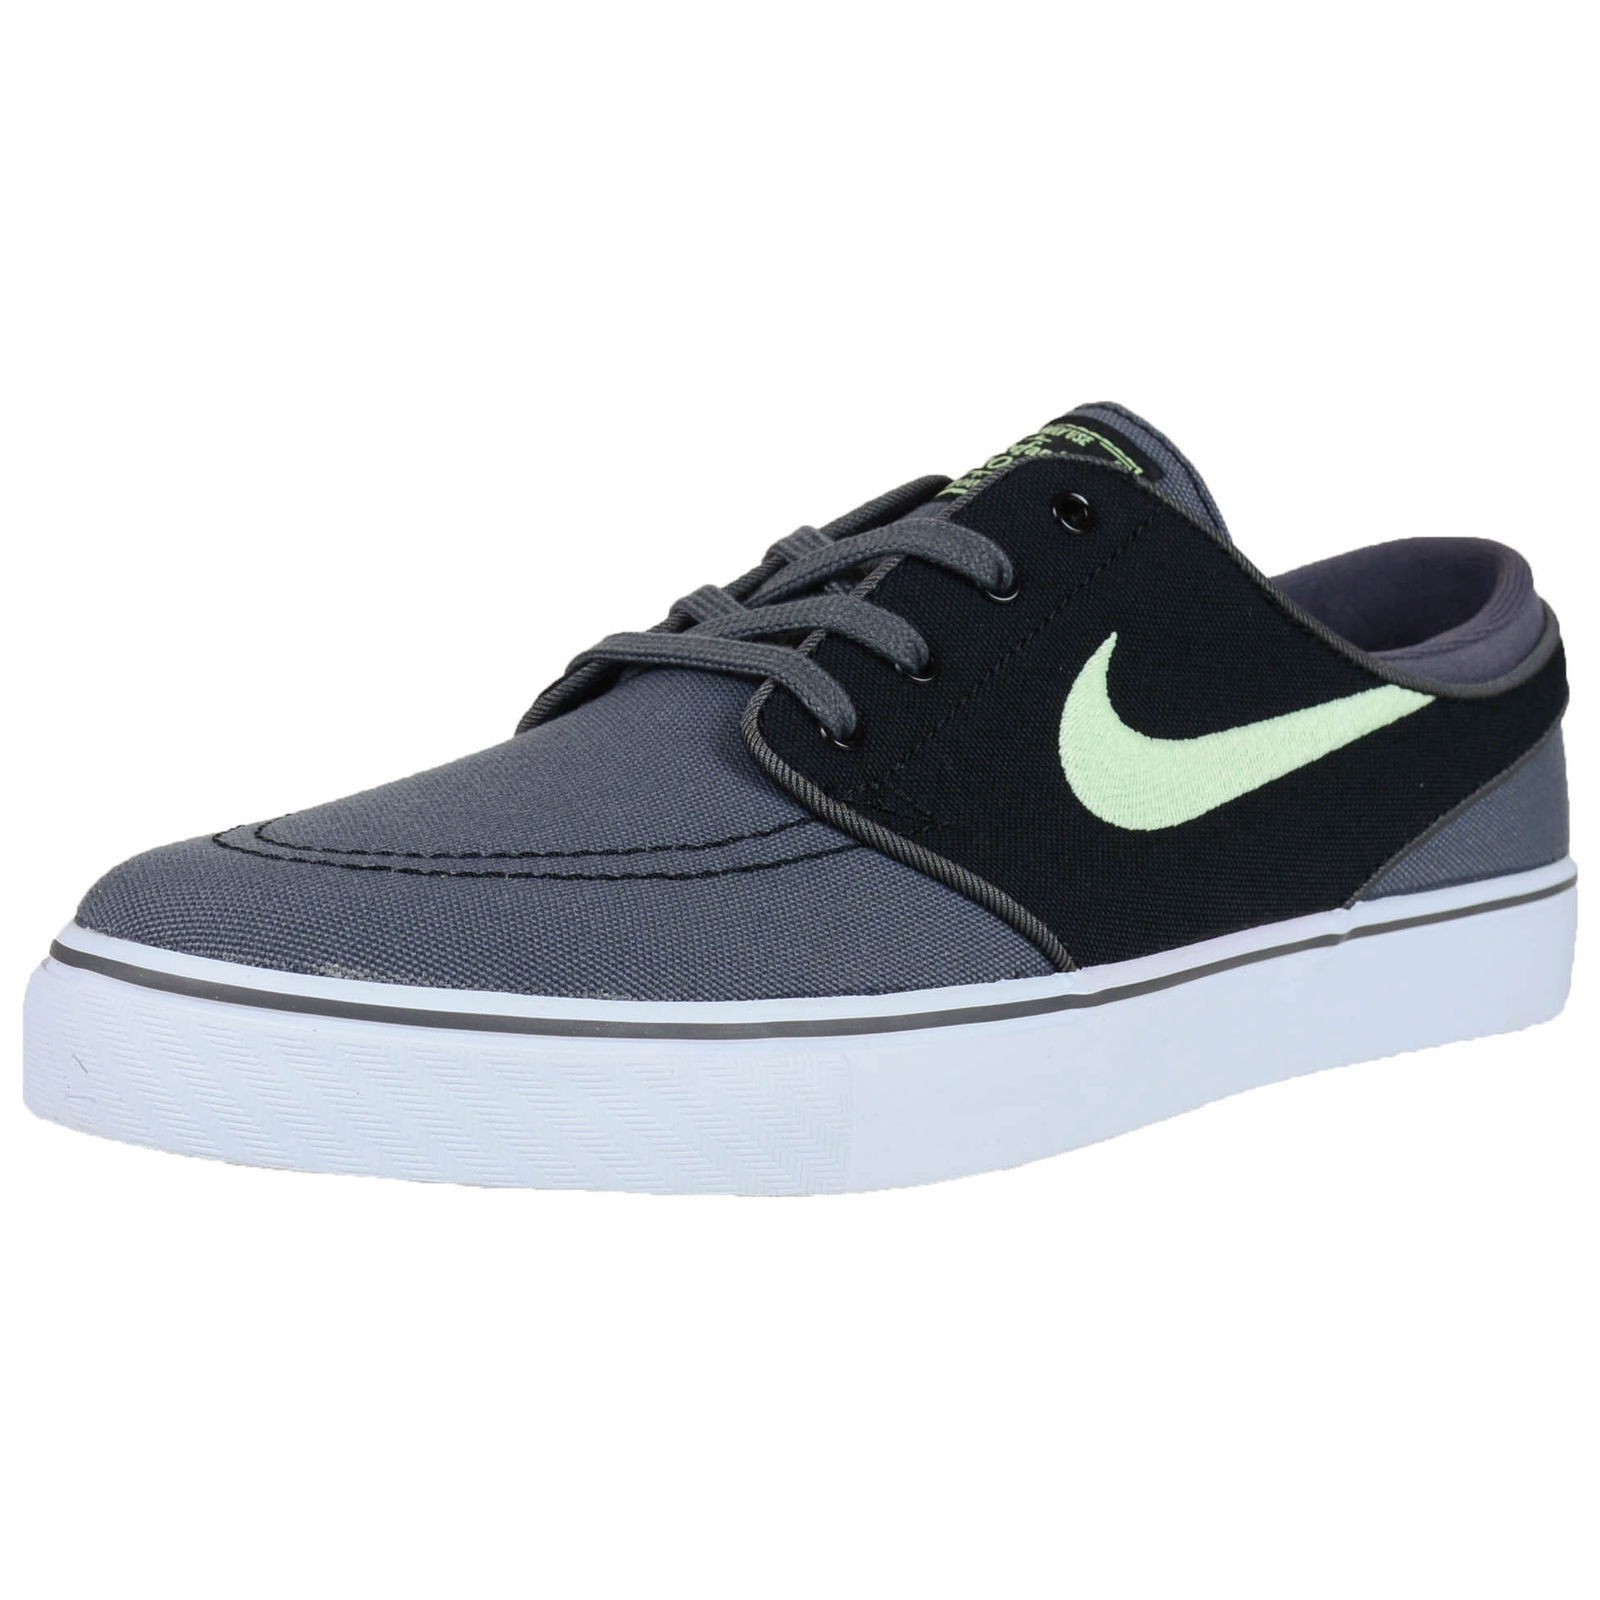 NIKE SB ZOOM SNEAKERS STEFAN JANOSKI LOW SNEAKERS ZOOM GREY MEN SHOES 615957-070 SIZE 8.5 NEW 157b25